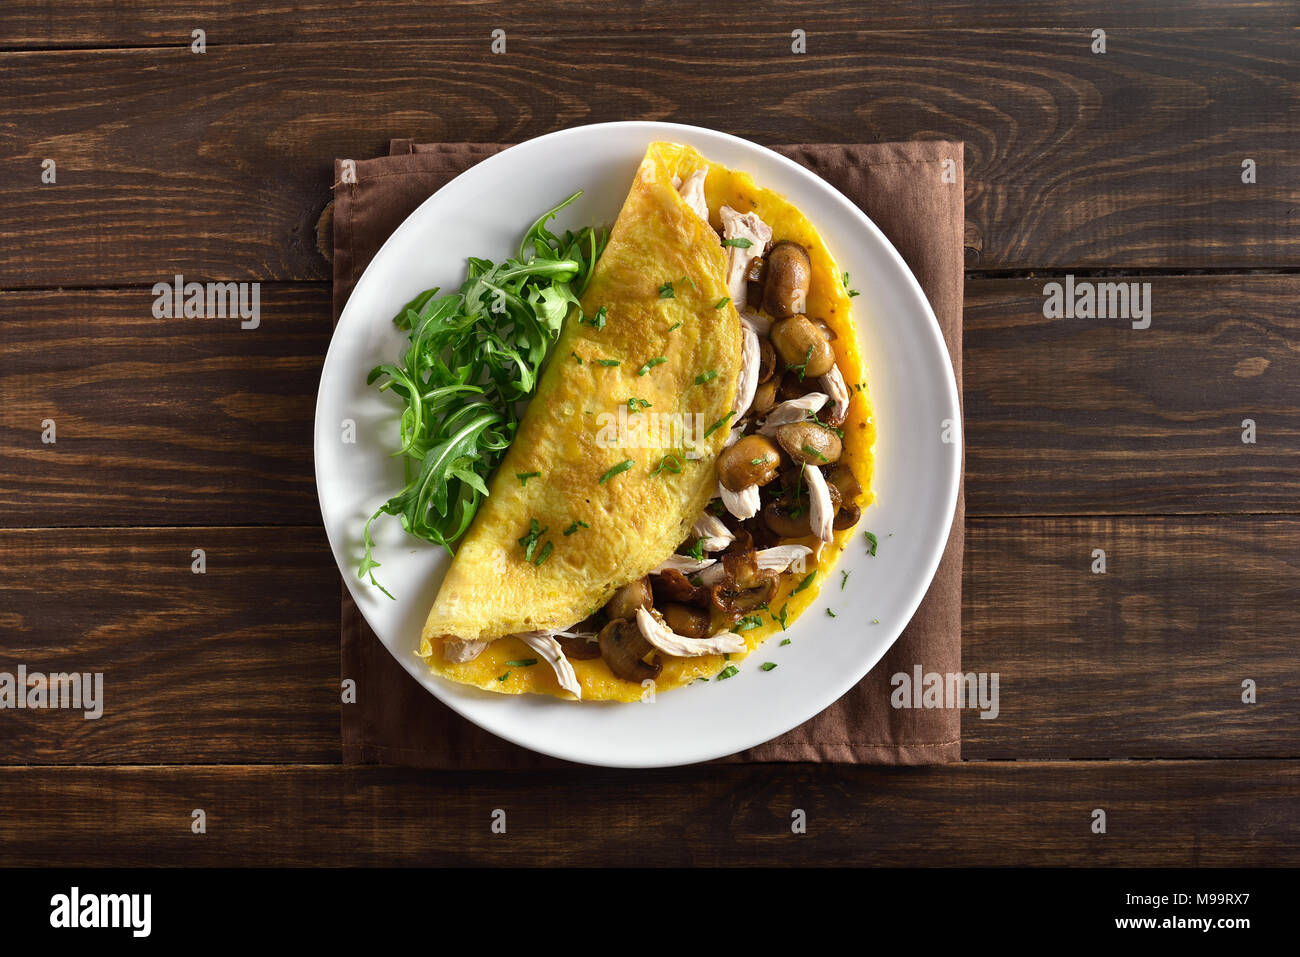 Healthy food for breakfast. Omelette stuffed with mushrooms, pieces of chicken meat, greens on wooden table. Top view, flat lay - Stock Image